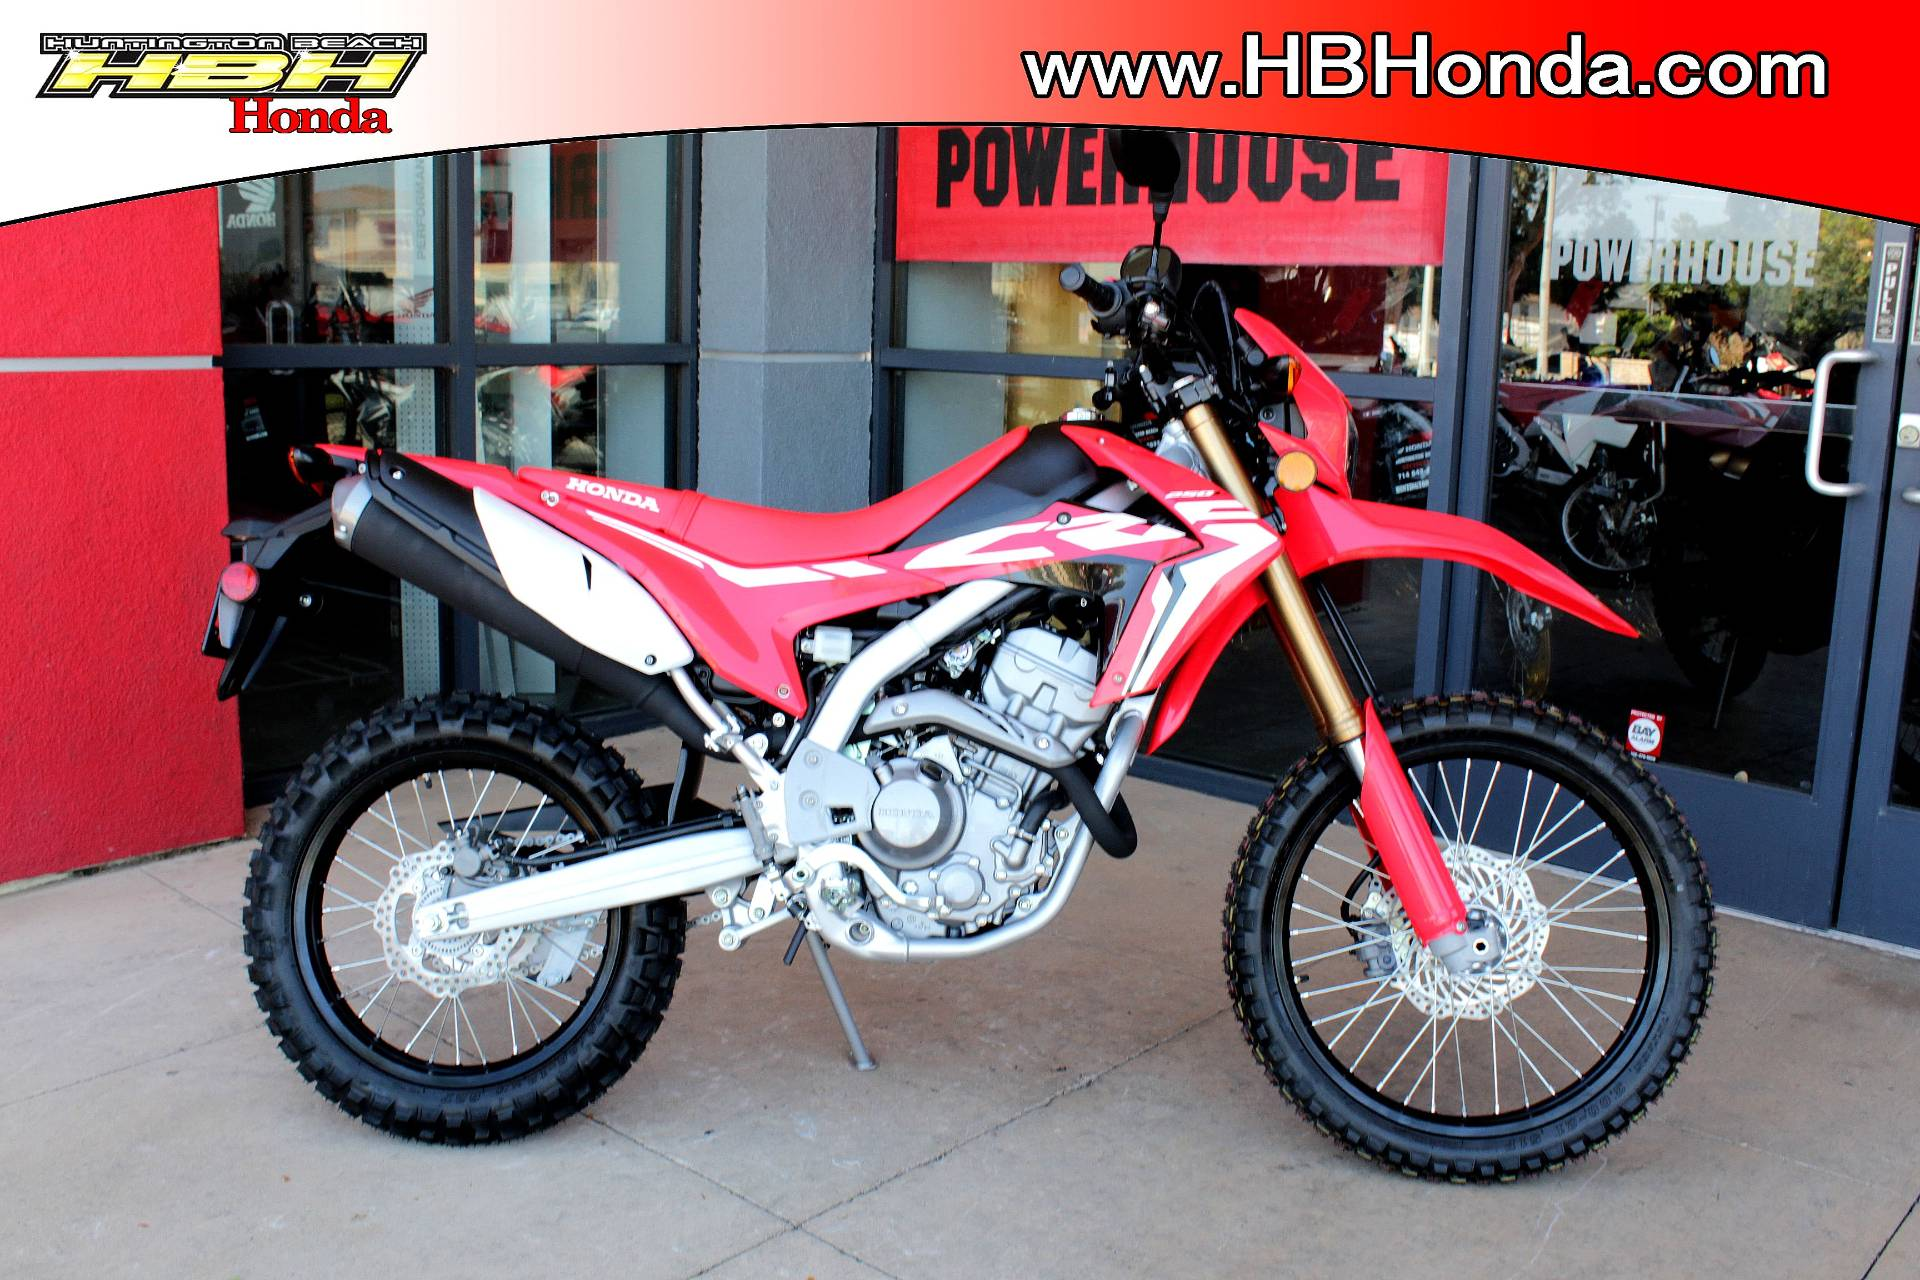 2019 Honda CRF250L ABS in Huntington Beach, California - Photo 6